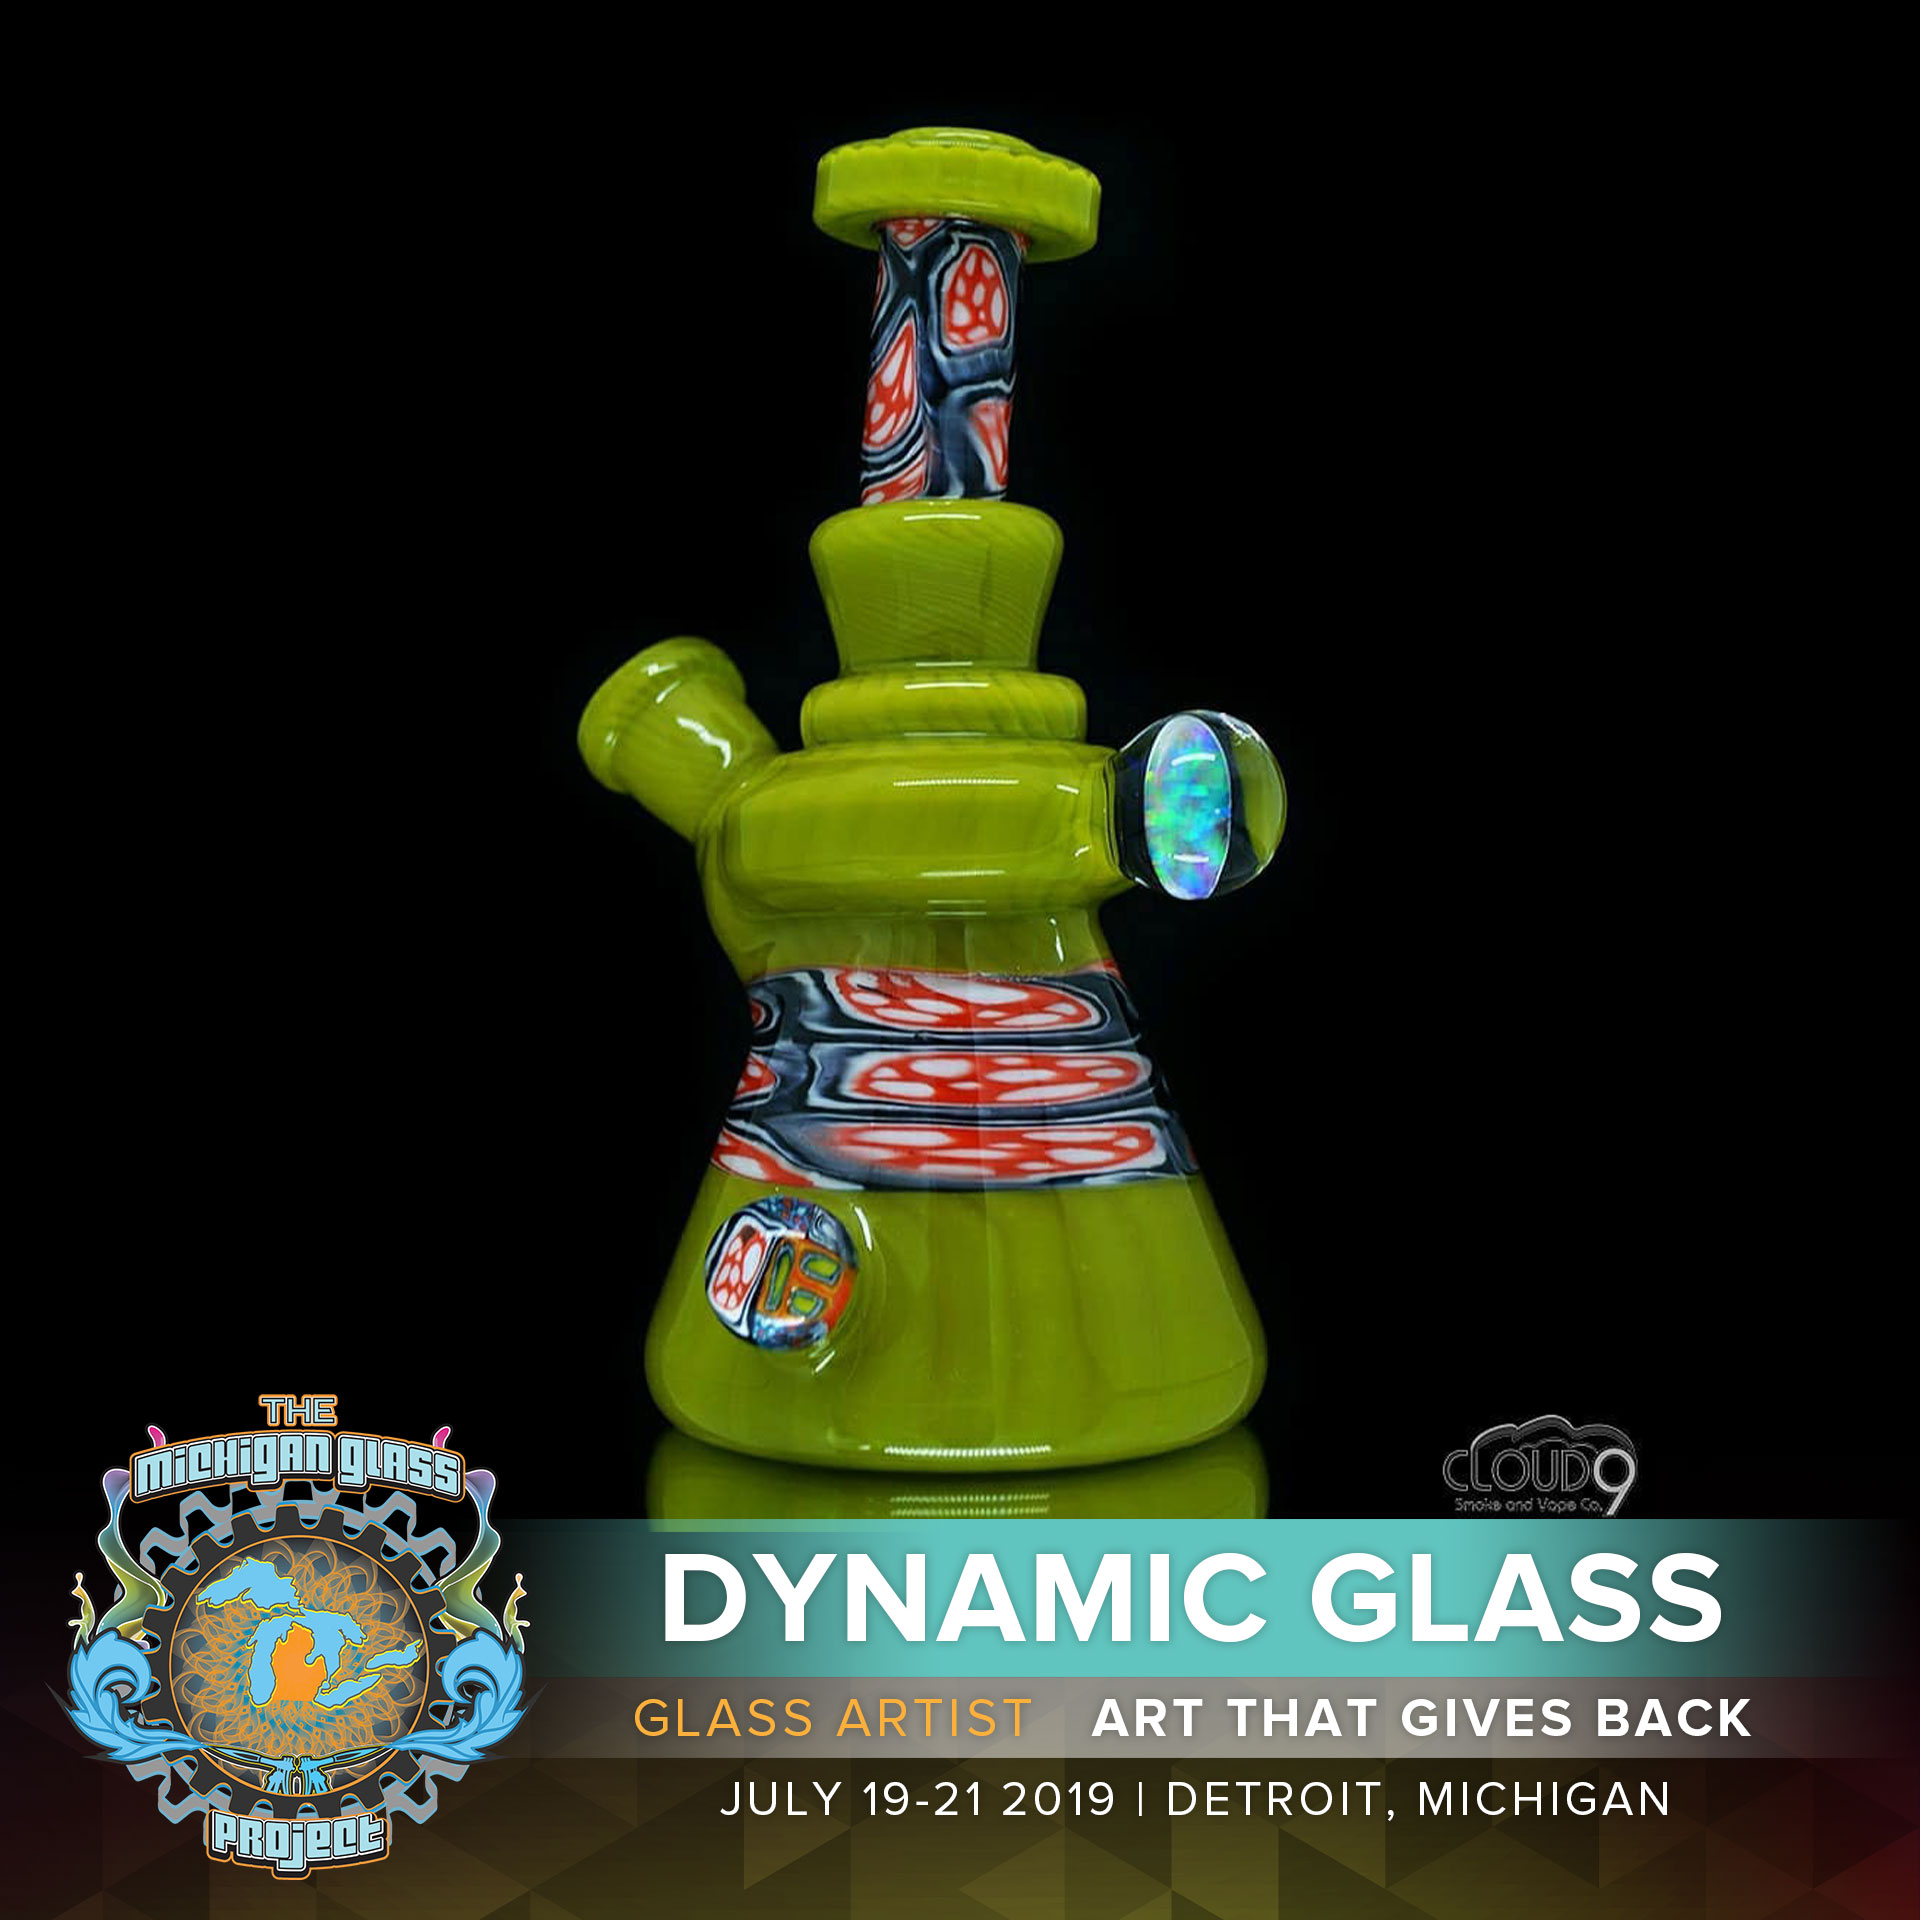 Dynamic-Glass_Shoutout-1